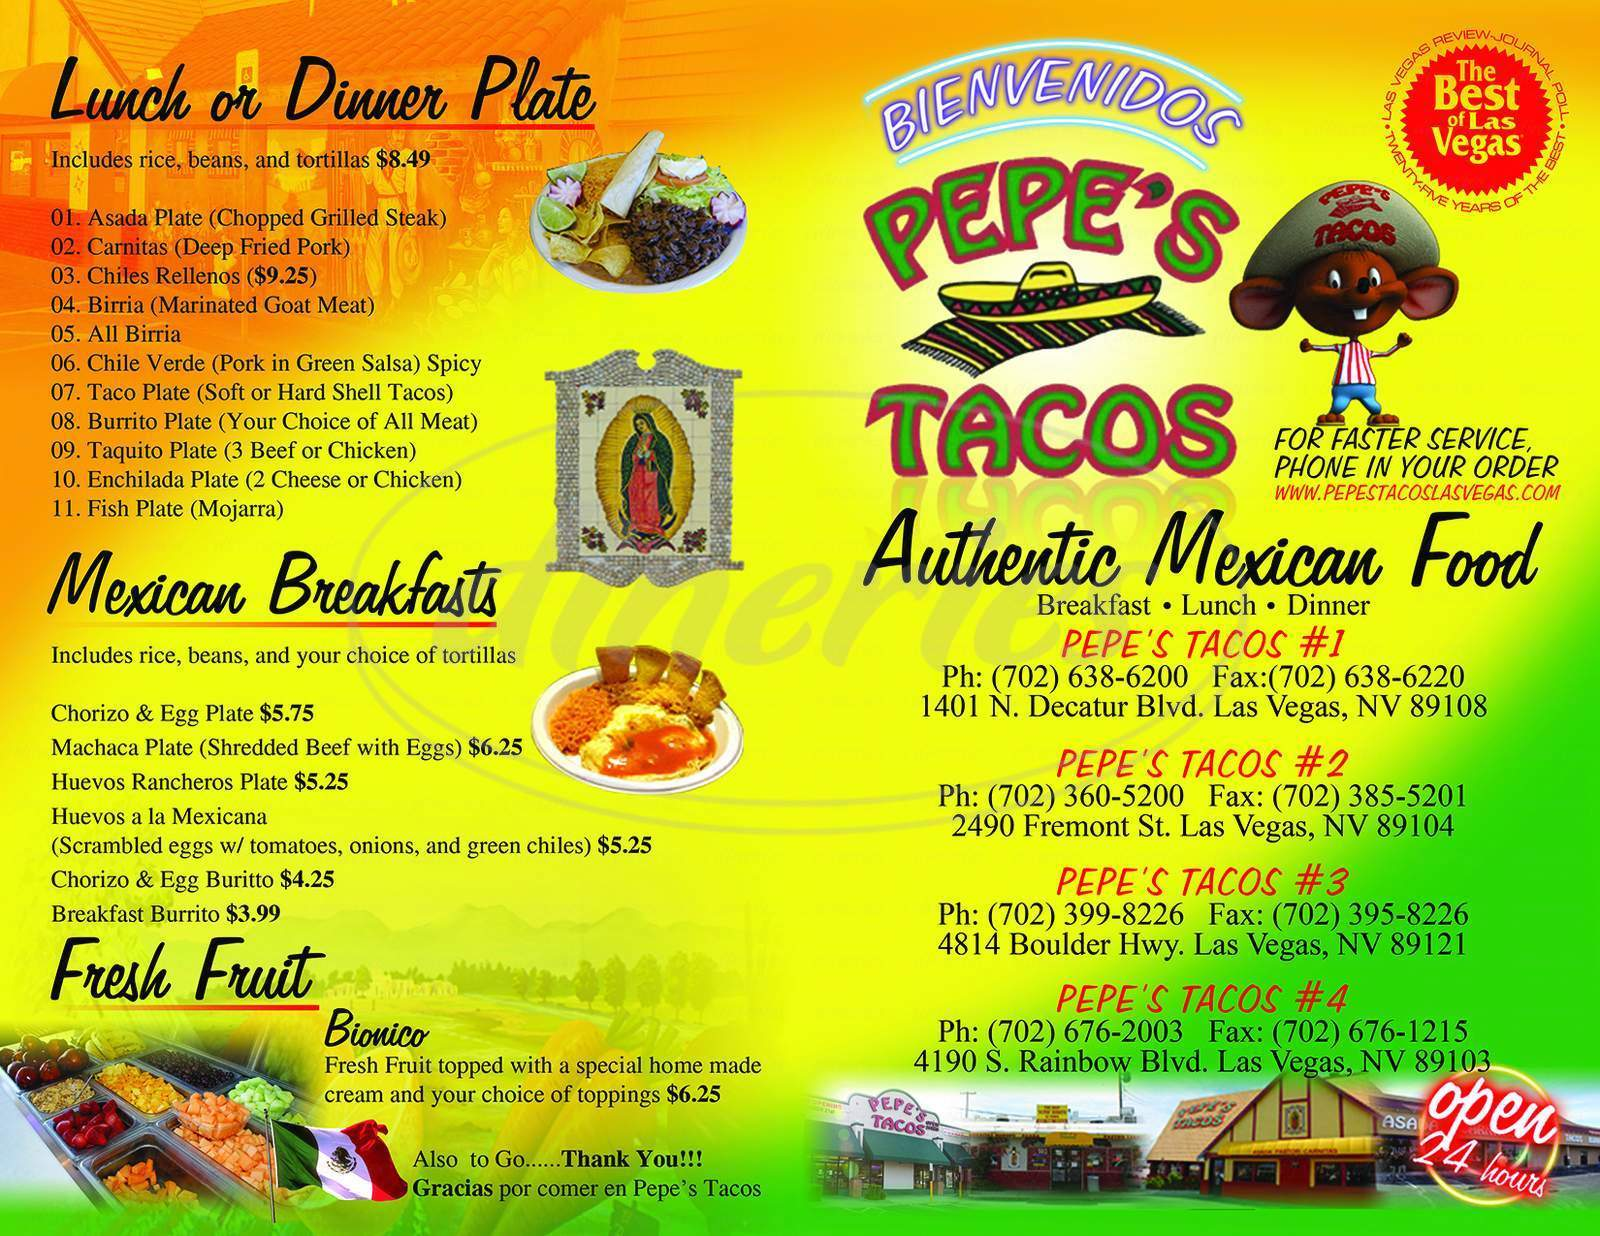 menu for Pepe's Tacos